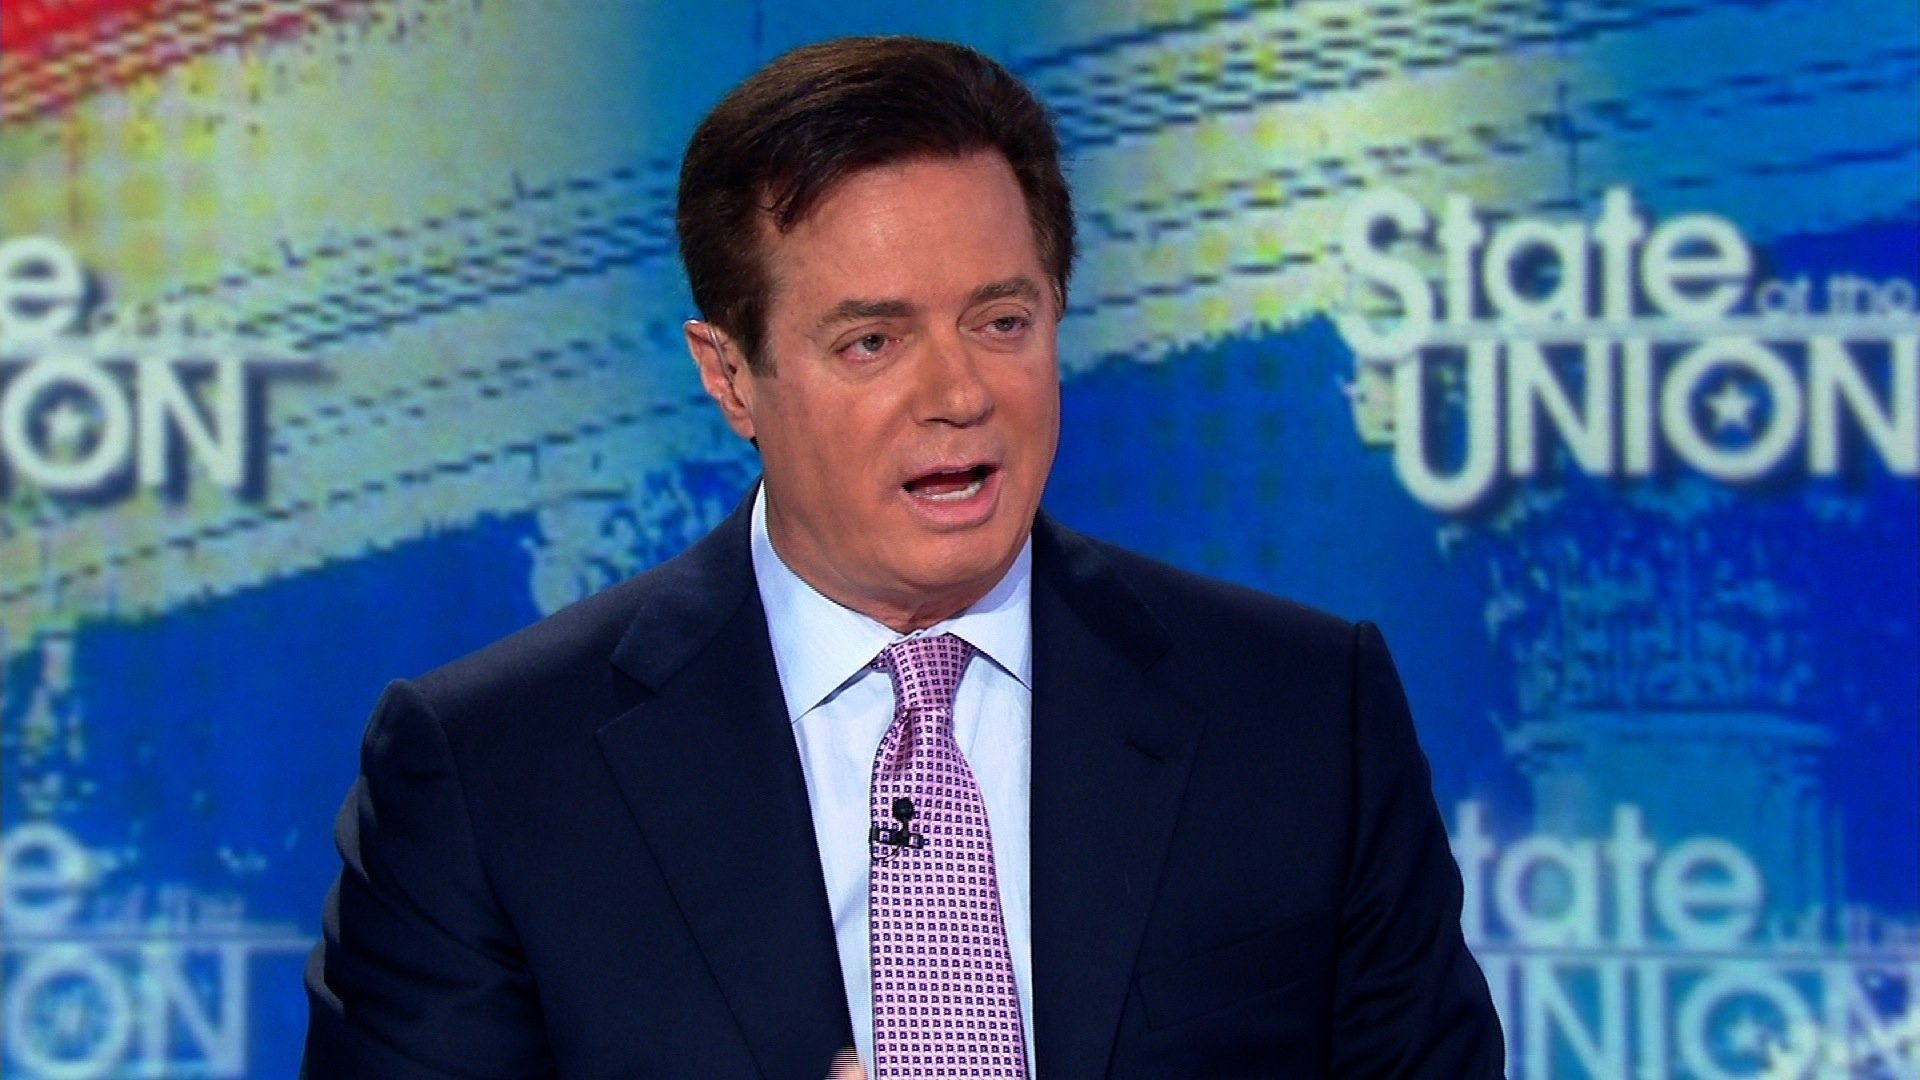 Paul Manafort was Trump's campaign chairman for the 2016 presidential election. Manafort is seen here speaking to CNN in 2016. (File Photo)